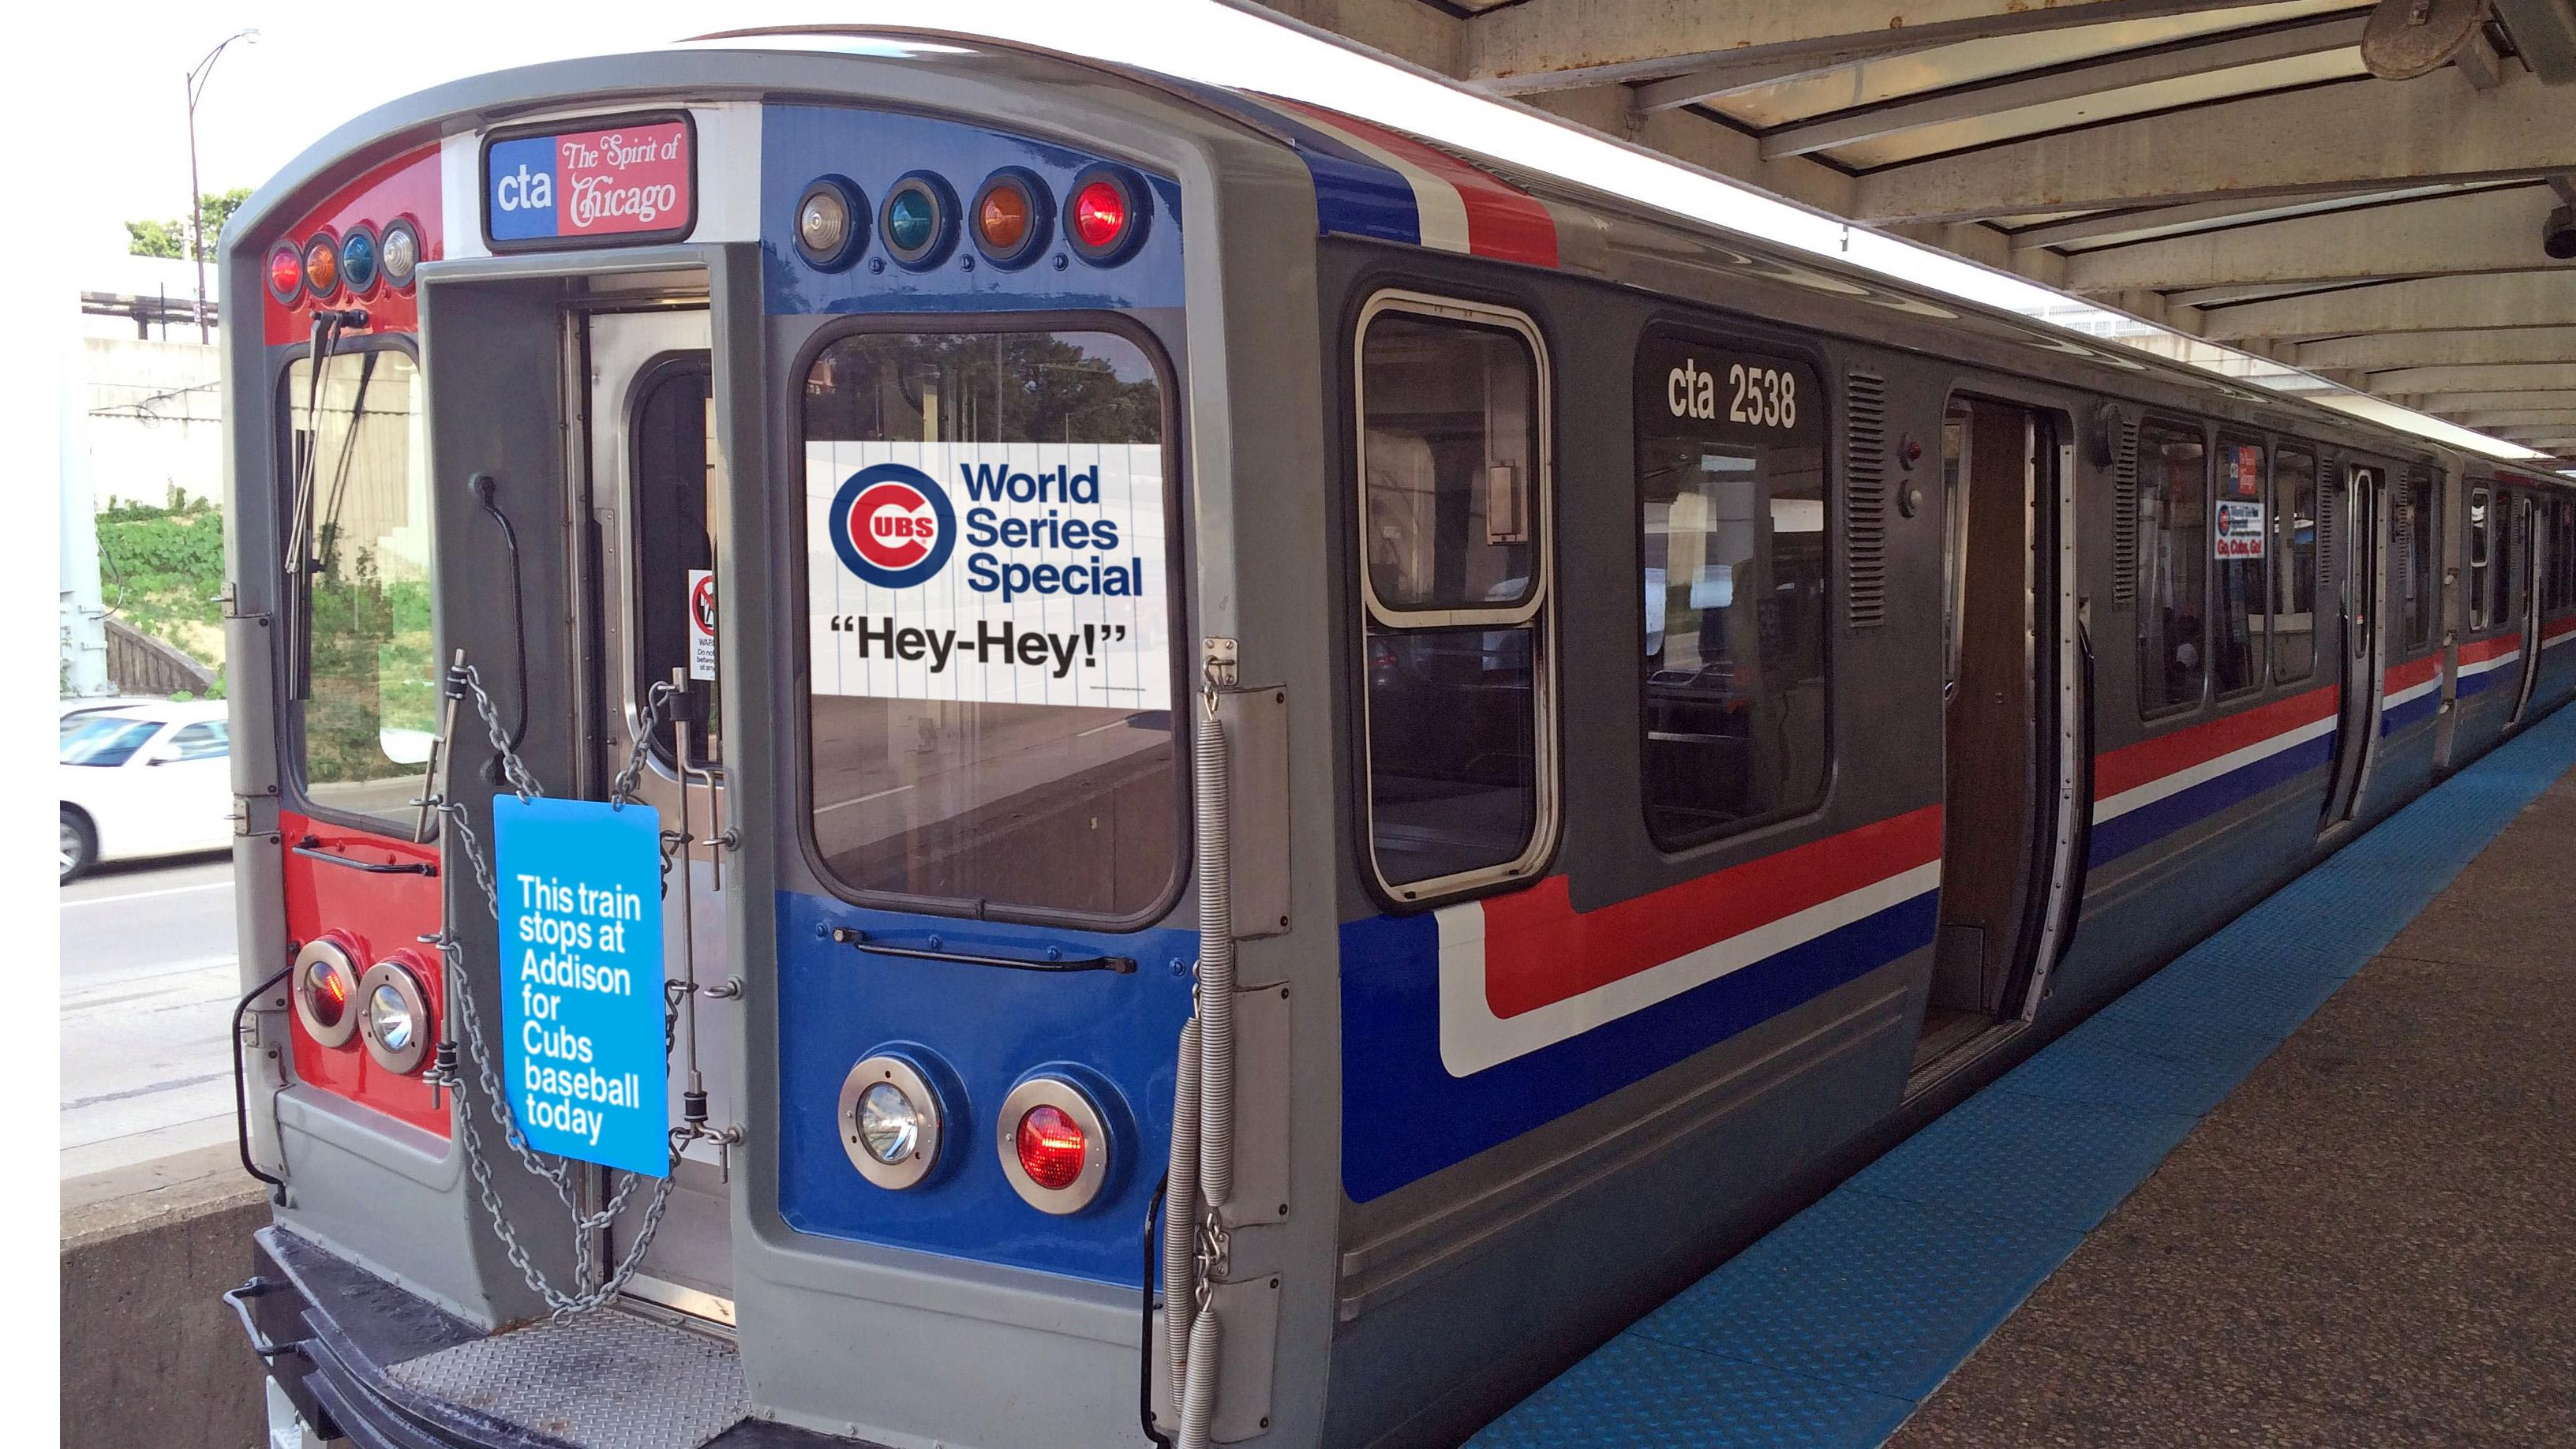 As part of its Heritage fleet program, the CTA will be operating its refurbished rail cars on the Red Line before the Cubs' World Series home games this weekend. (Courtesy of Chicago Transit Authority)